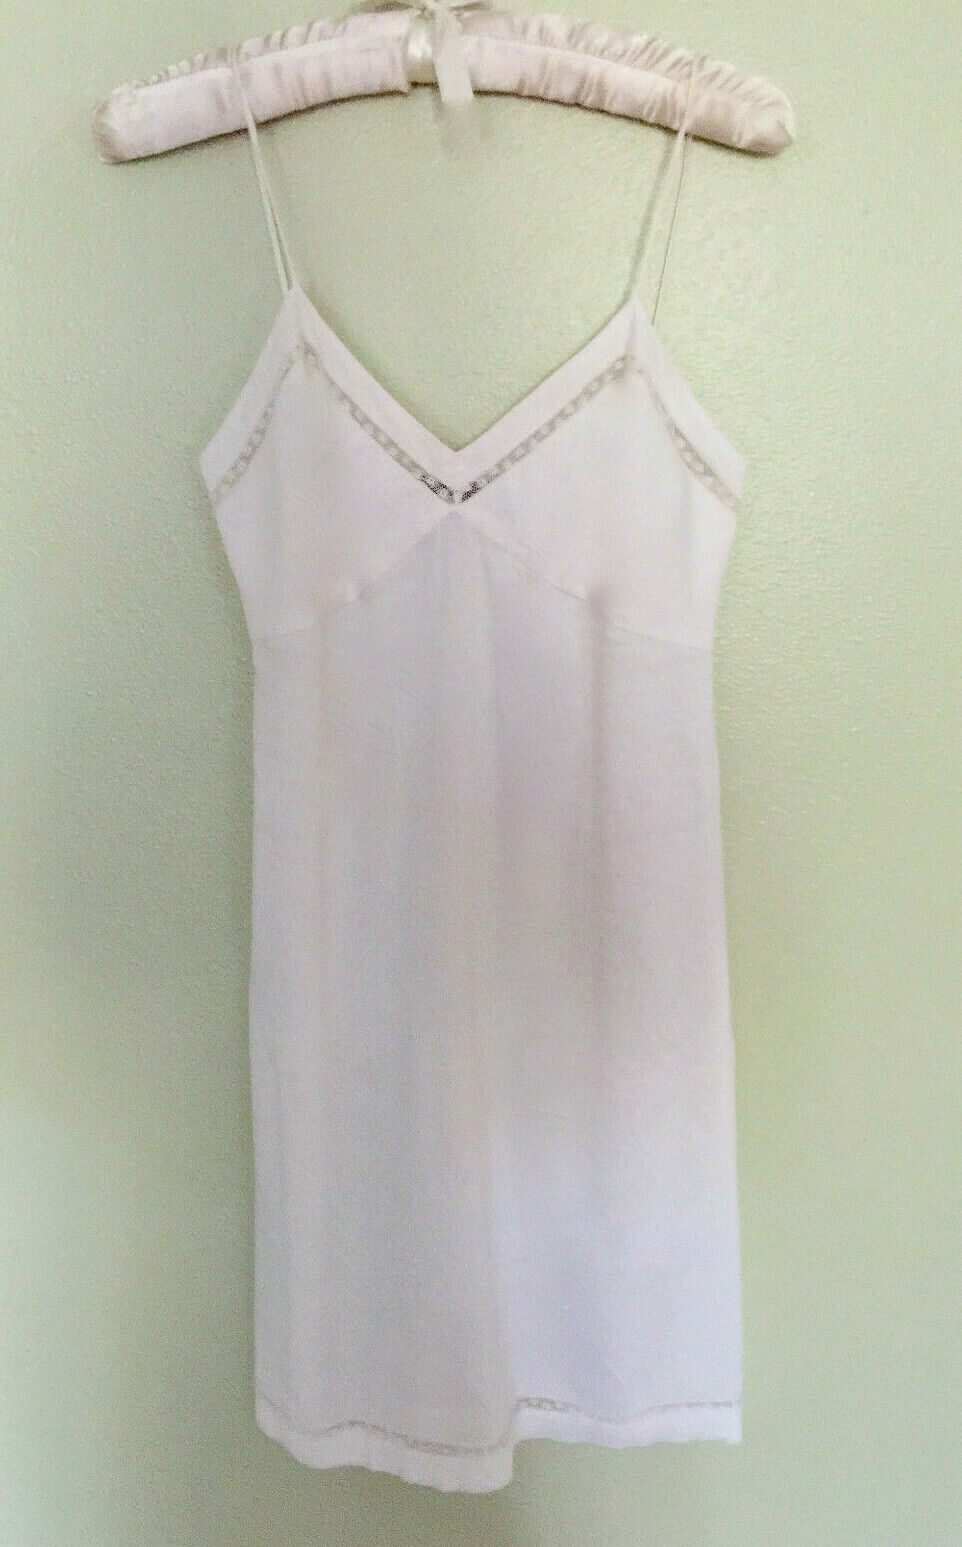 ELEGANT THEORY V-NECK SLIP DRESS IN IVORY-WHITE_ PRETTY  FOR ALL OCCASIONS